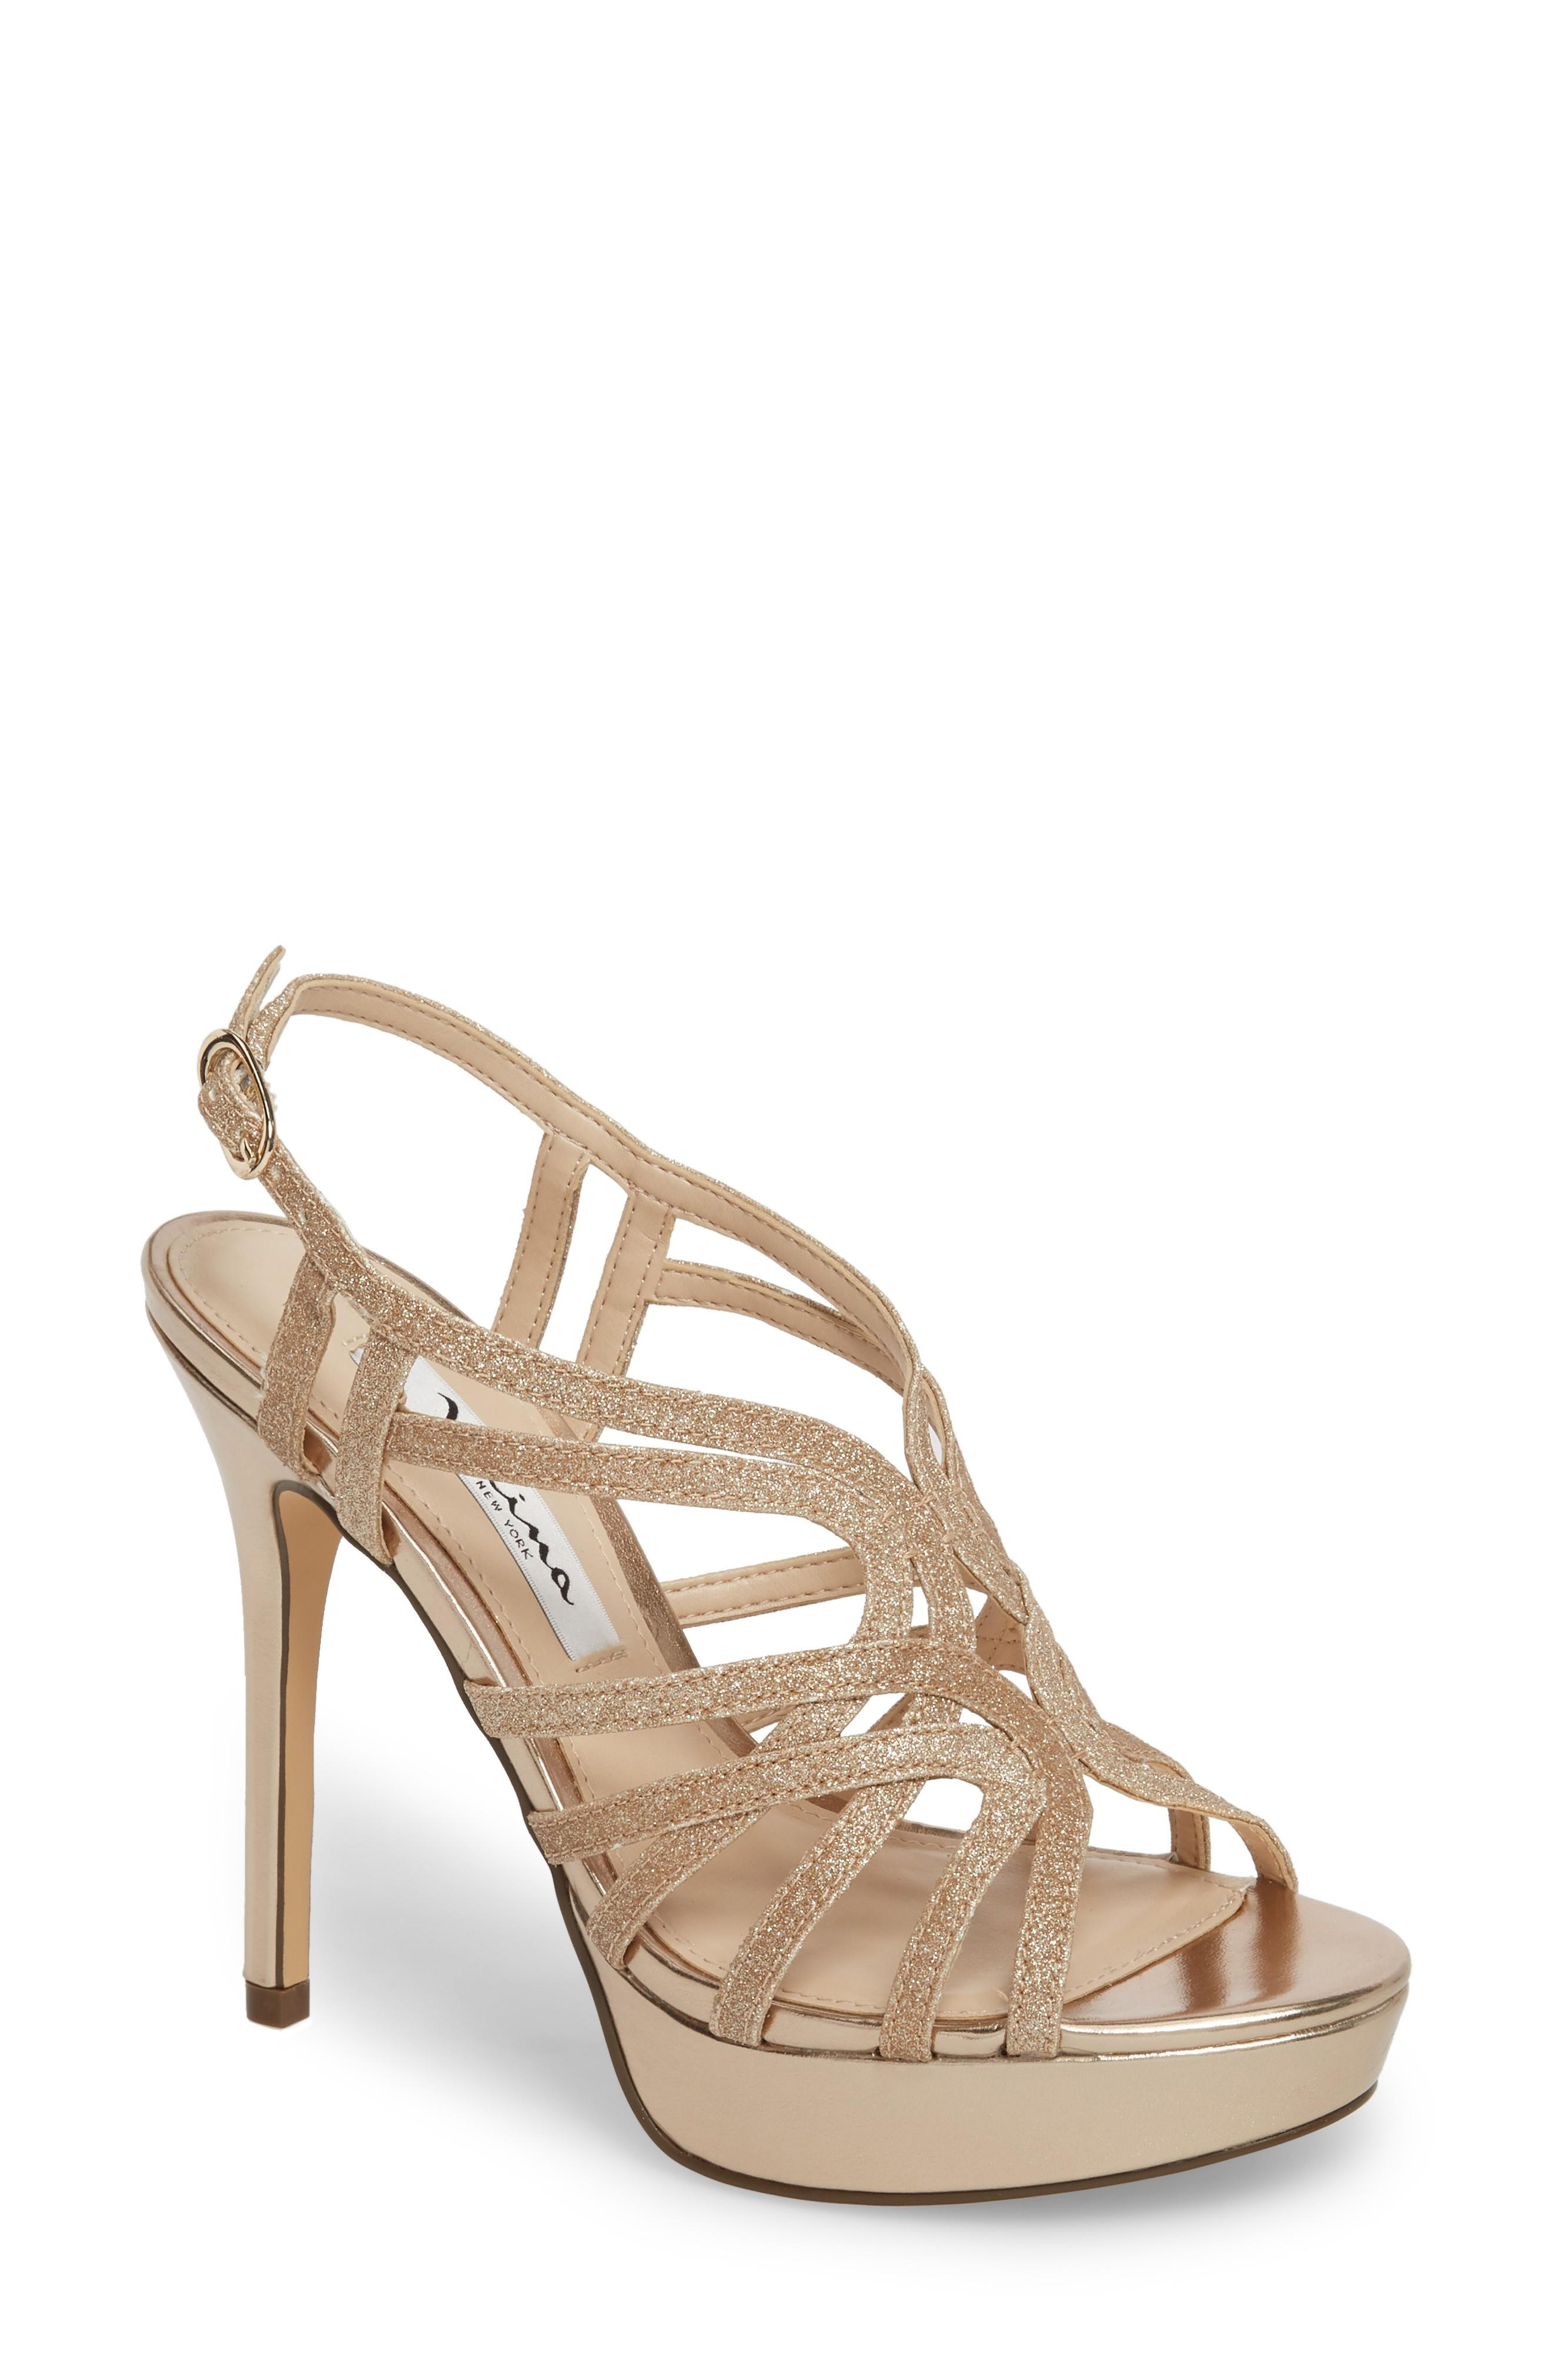 49e5d5df5eed Style Name  Nina Solina Platform Sandal (Women). Style Number  5530479 1.  Available in stores.